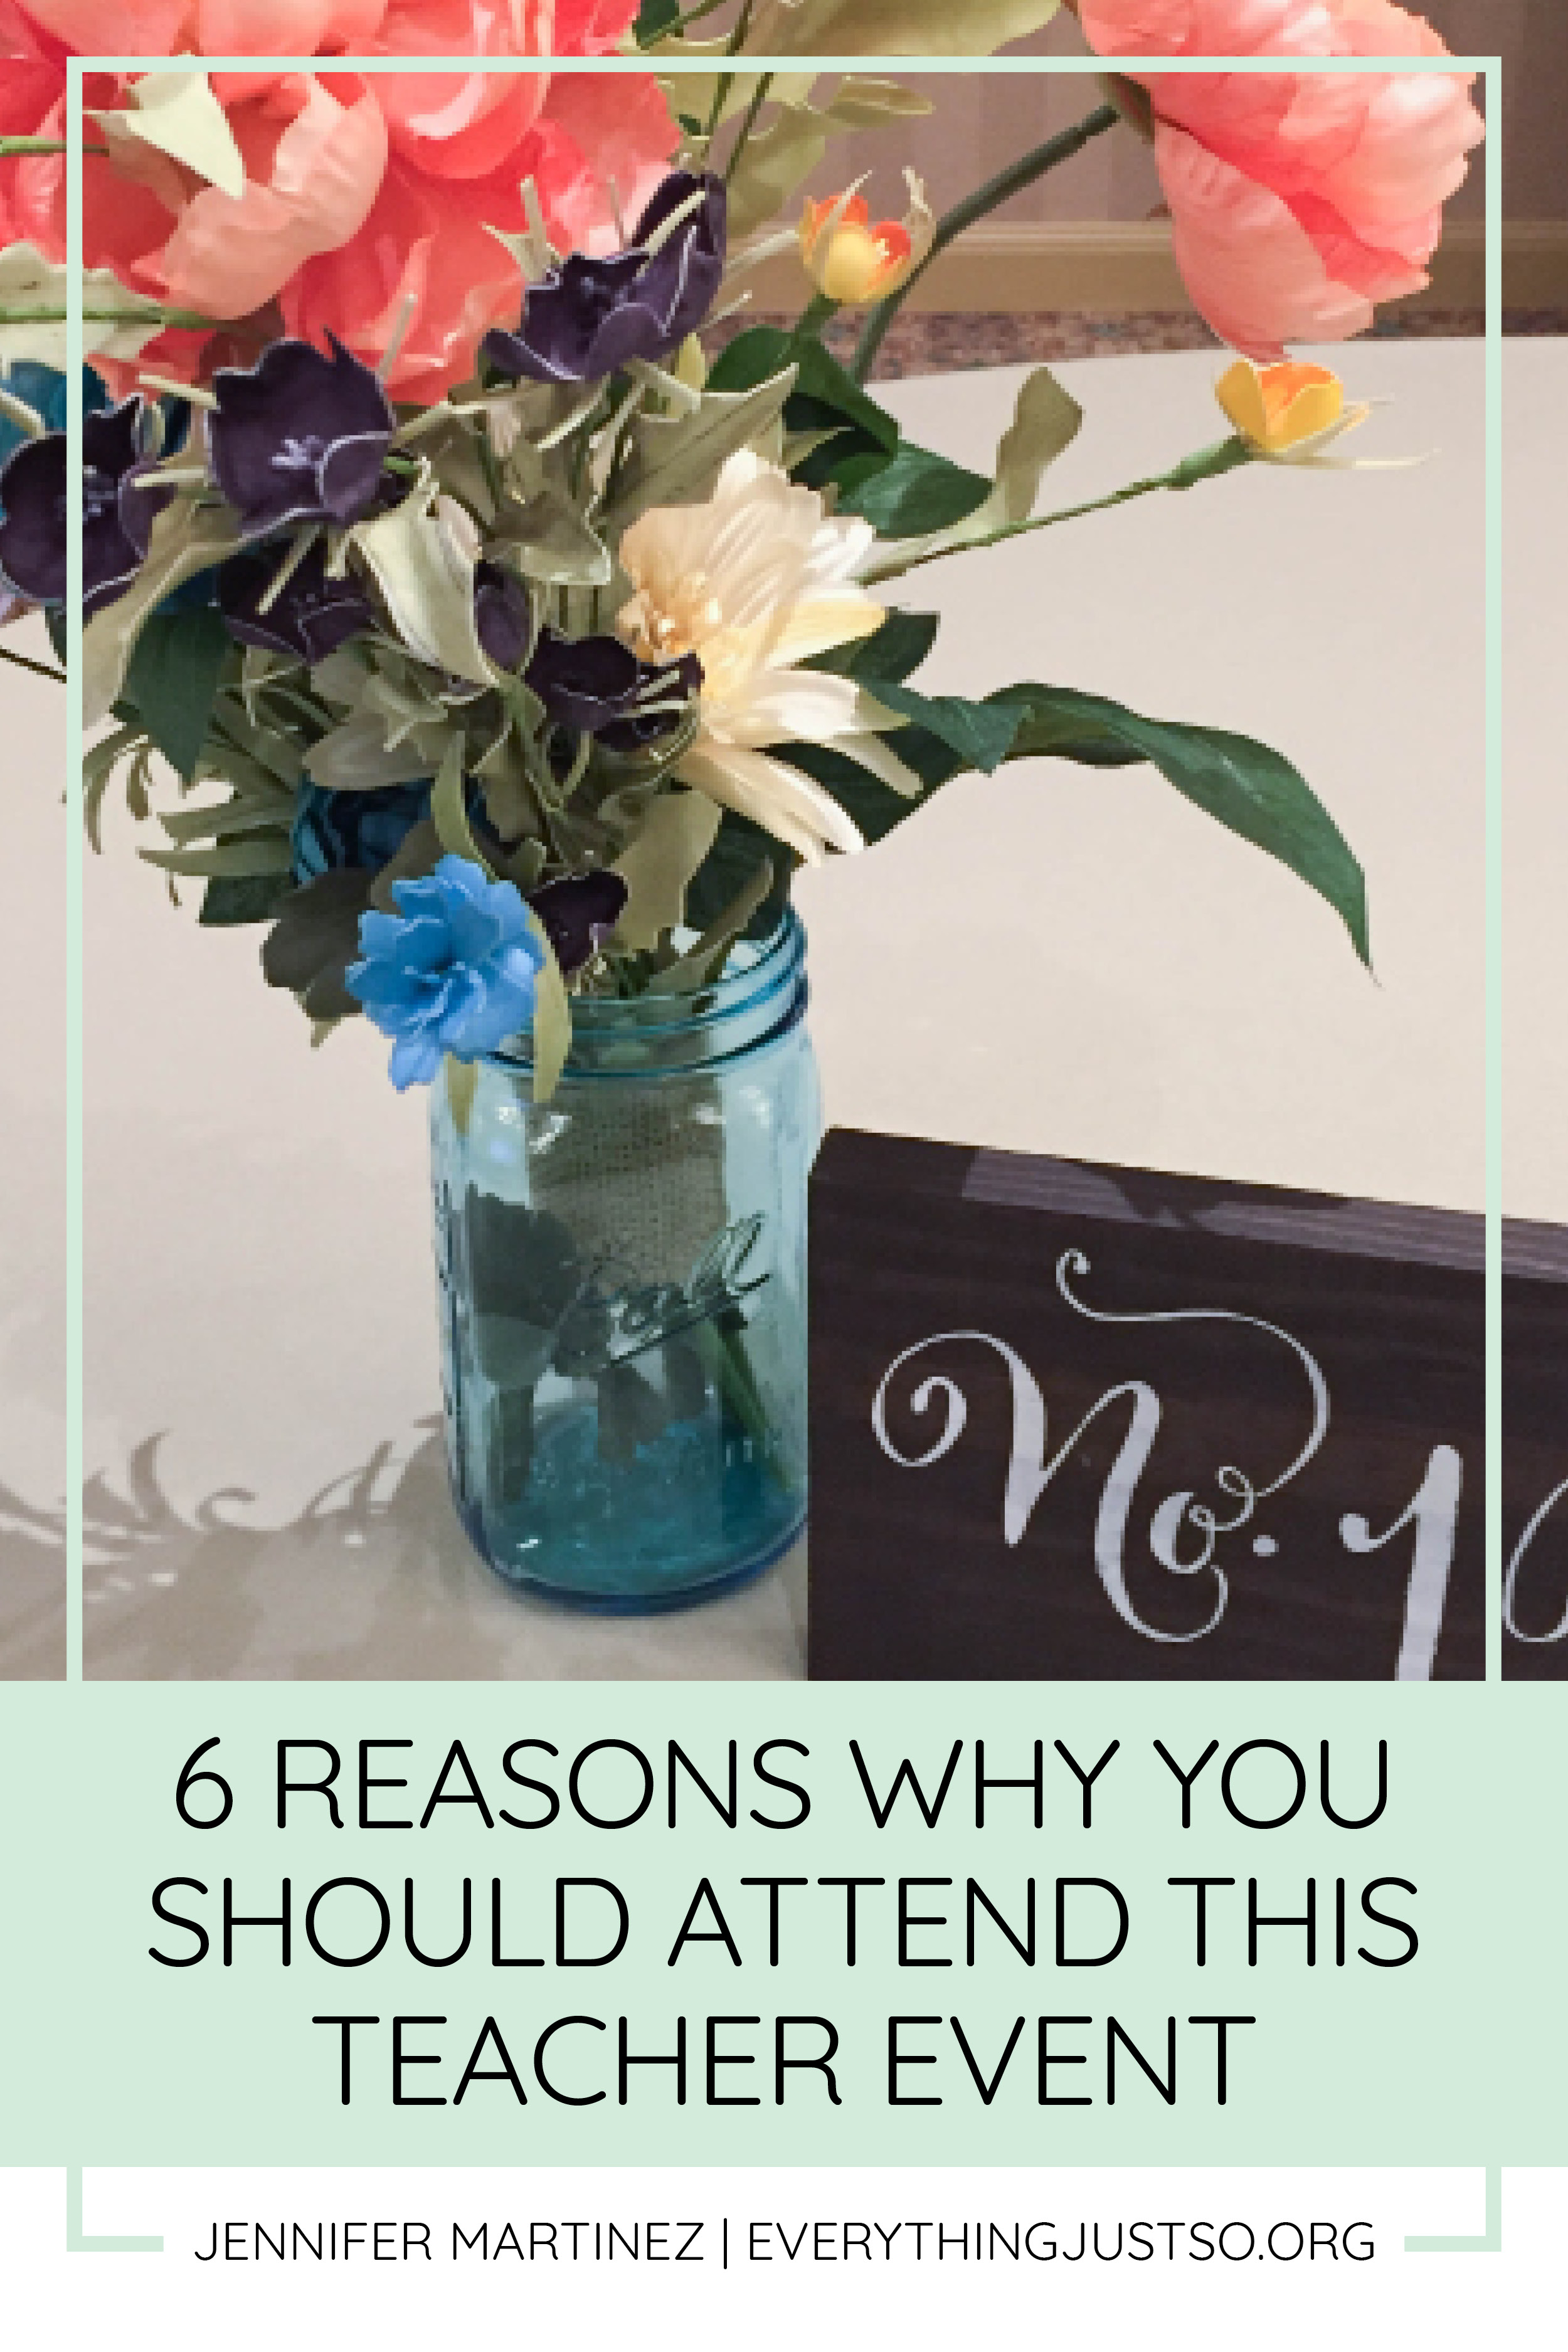 Top 6 Reasons Why You Should Attend this Teacher Event | Are you in need of some rest, relaxation, and a little appreciation? Then I have the event for you! Designed with teacher appreciation in mind, this weekend retreat is the perfect remedy to end of the year stress and overwhelm. Here are my top six reasons why this teacher event should not be missed! | everythingjustso.org